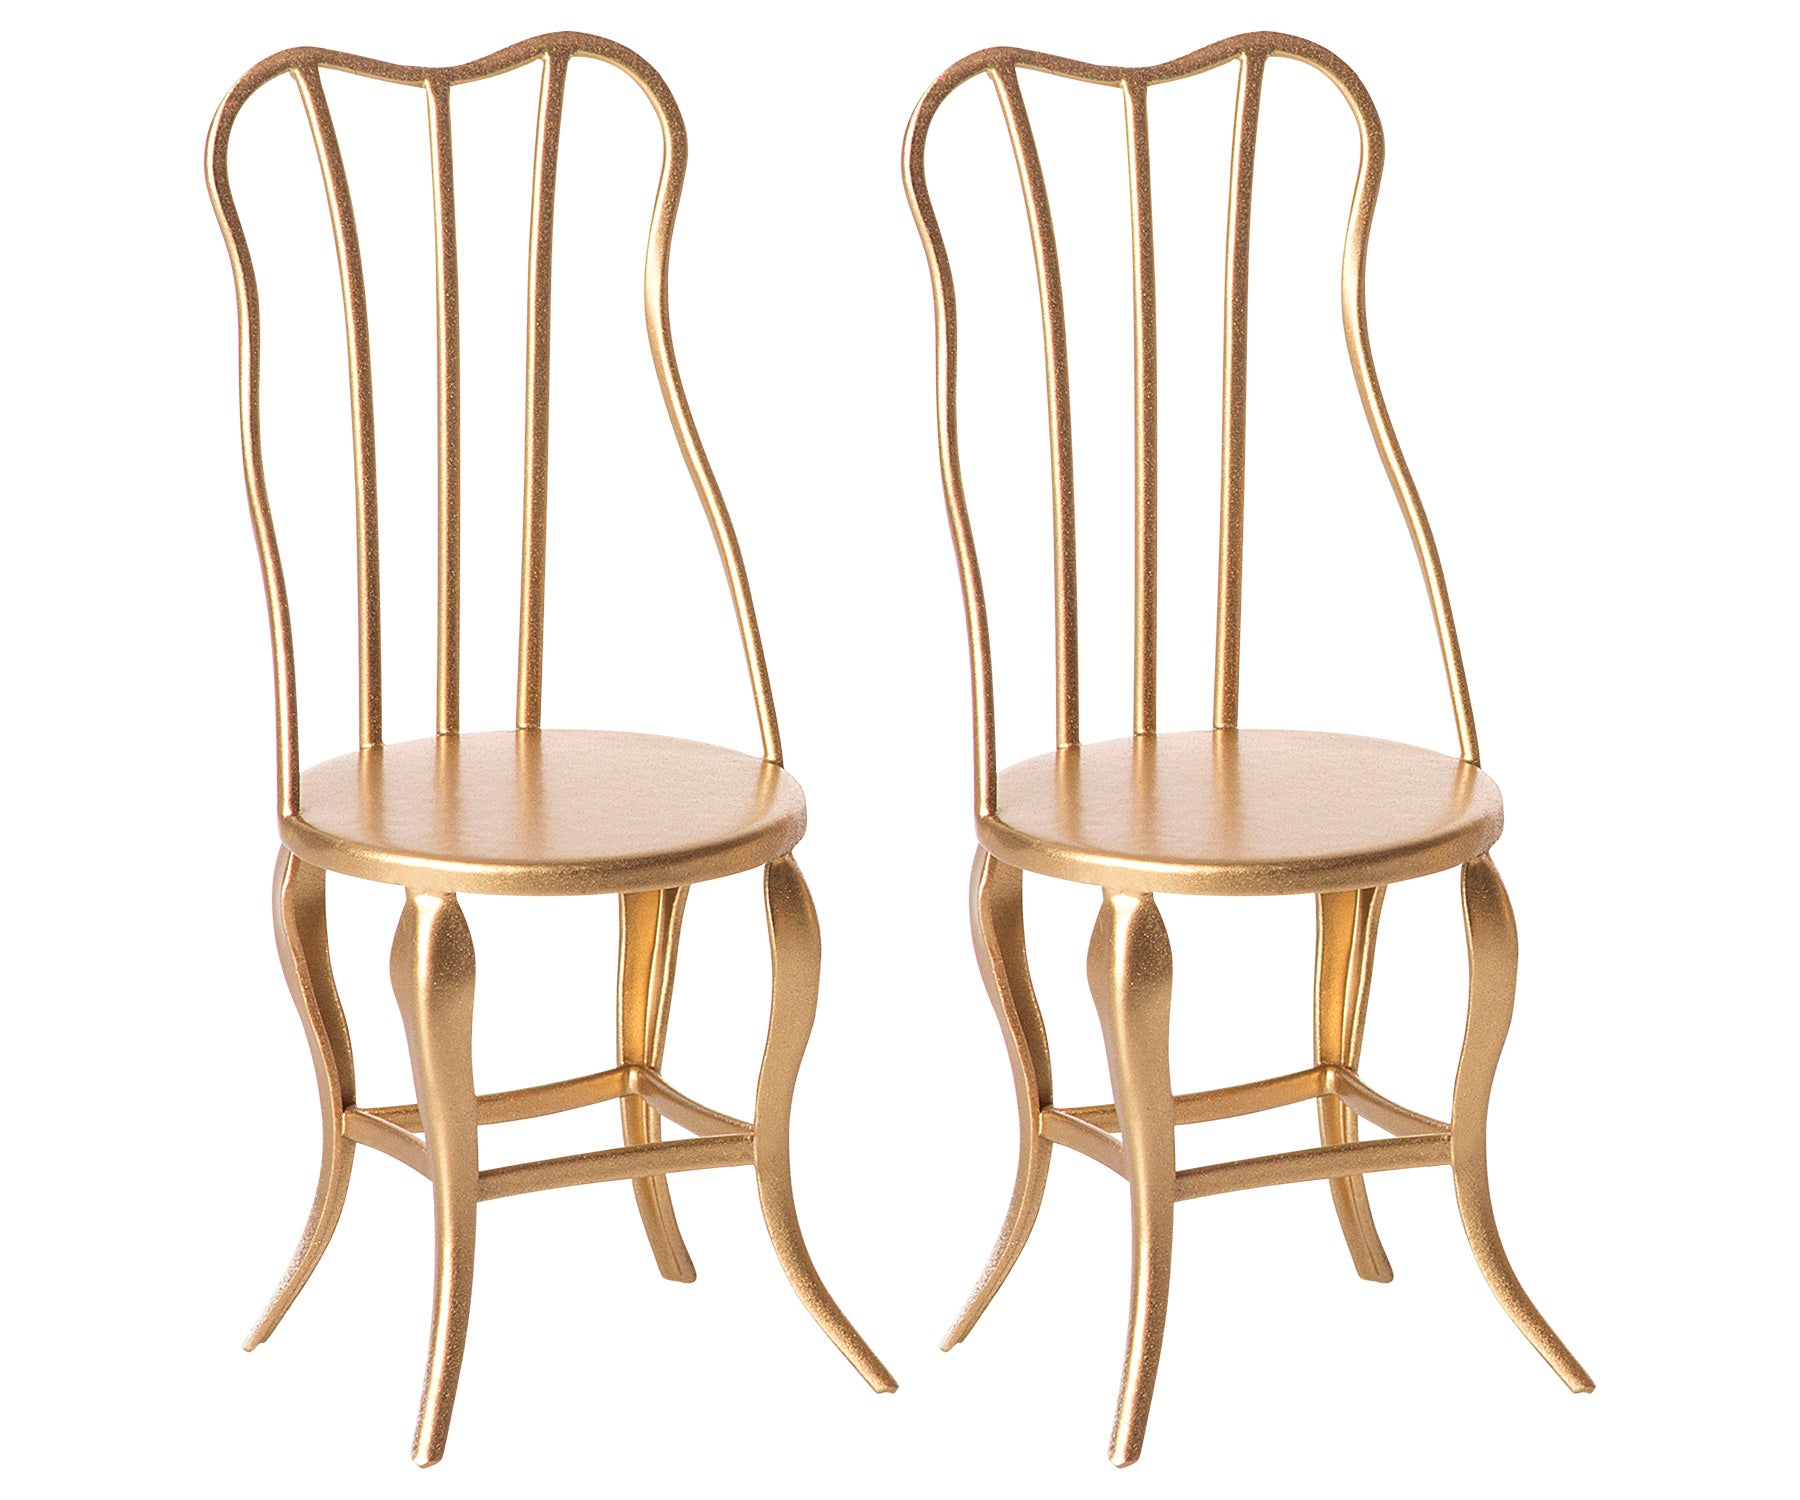 Etonnant 2 Gold Vintage Micro Chairs